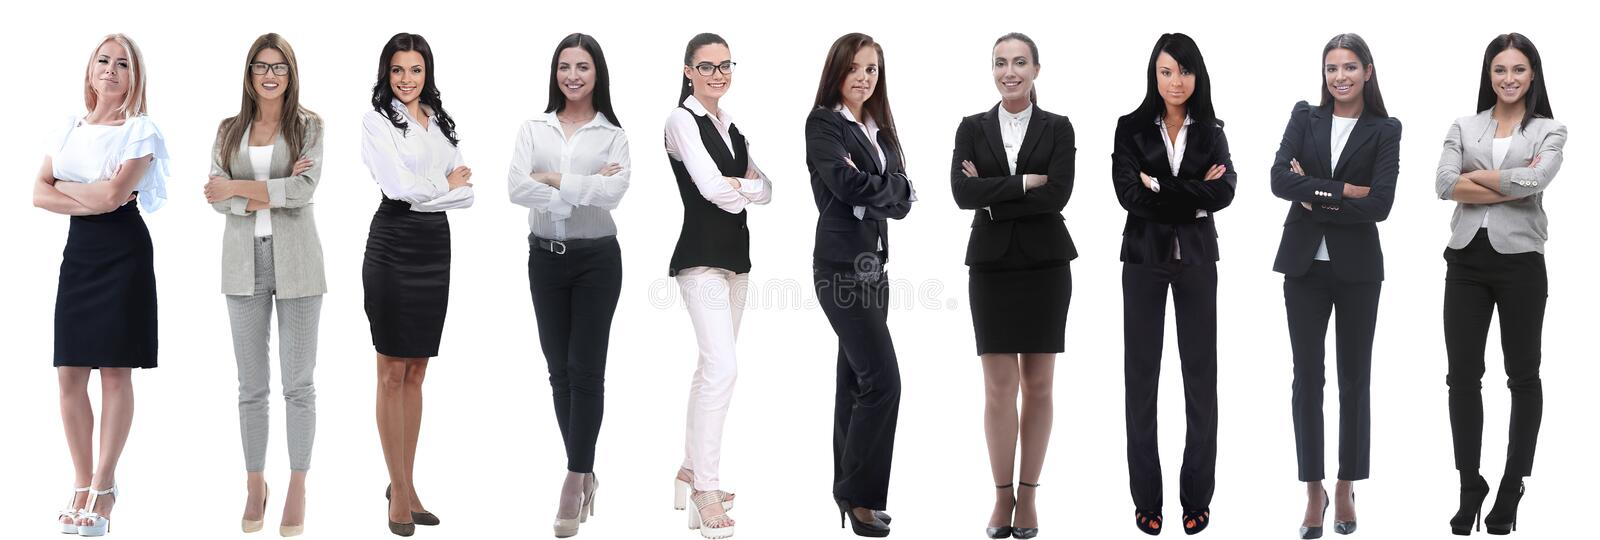 Panoramic collage of a group of successful young business women. royalty free stock photos